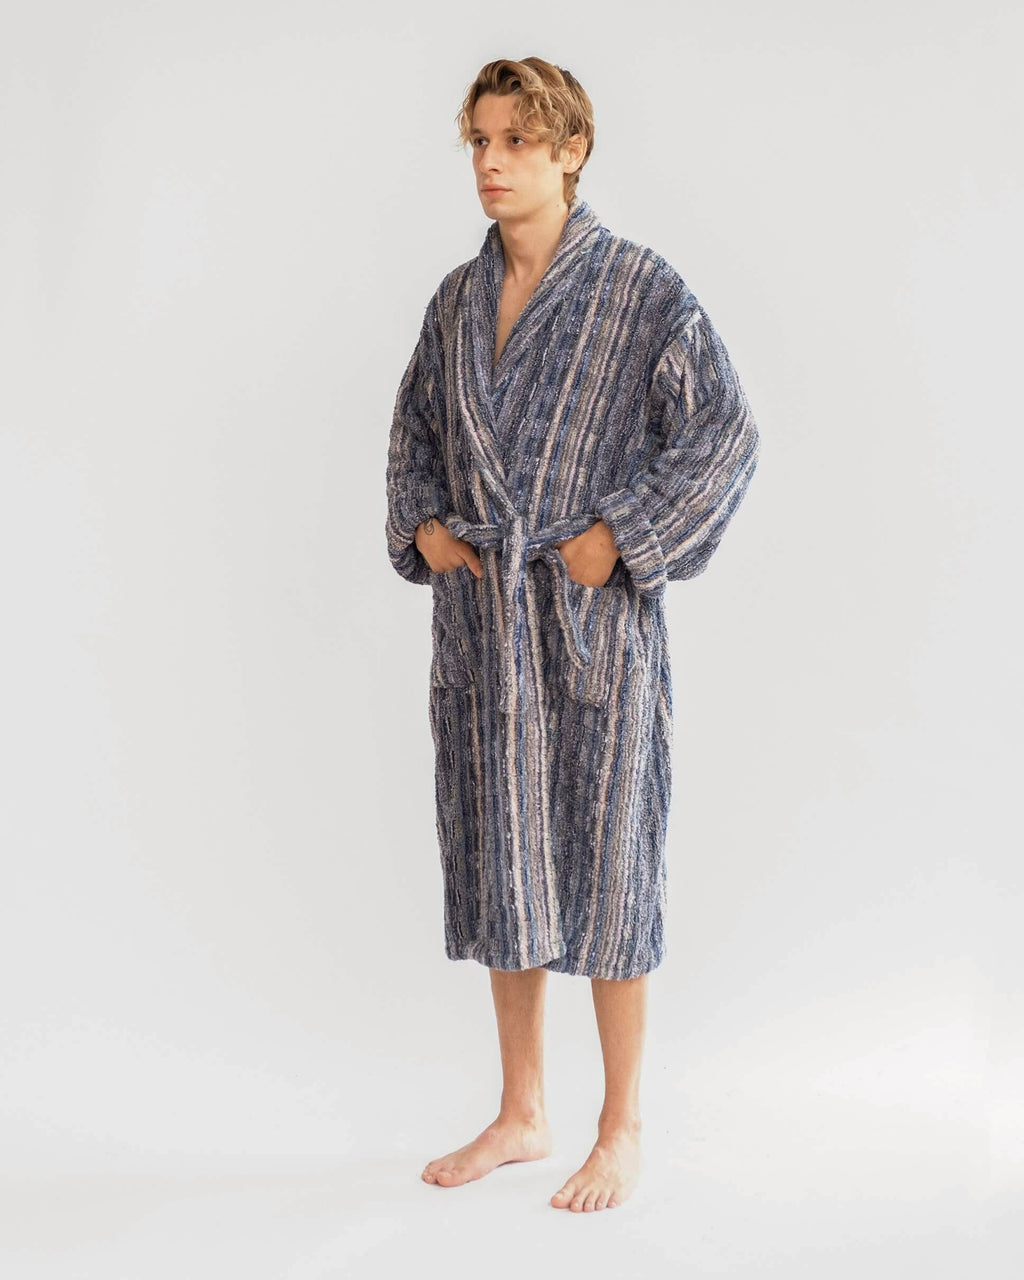 Marbled Bathrobe